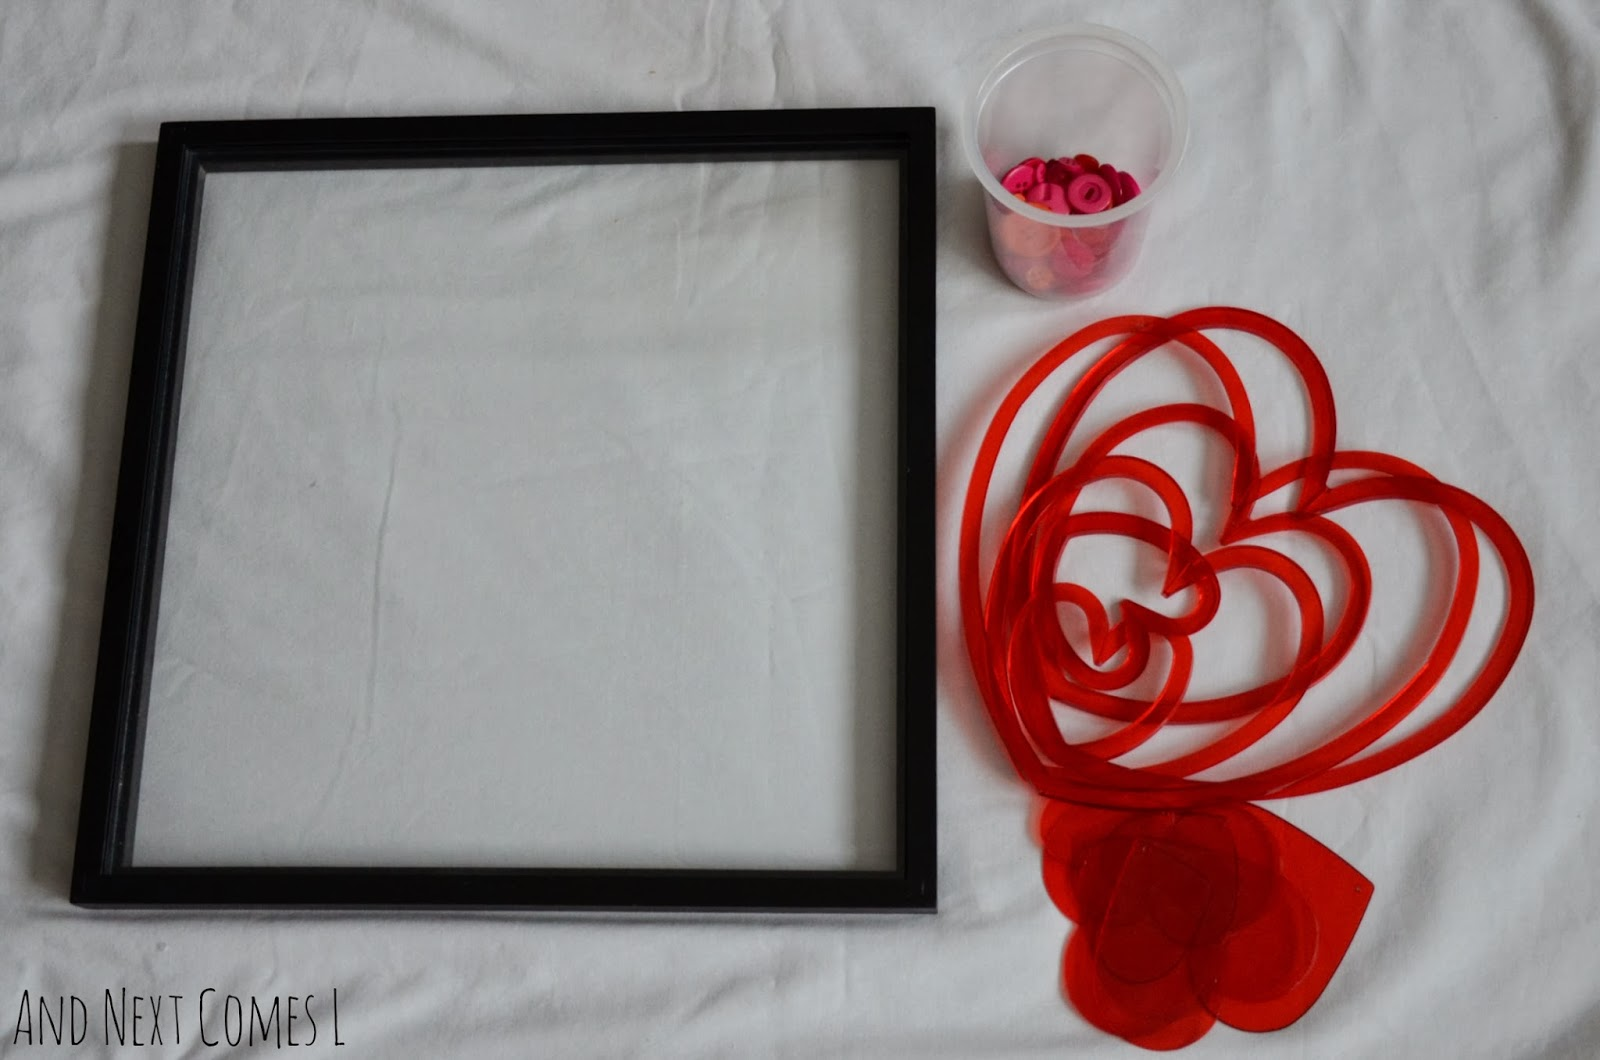 Simple Valentine's themed loose parts play idea for toddlers and preschoolers